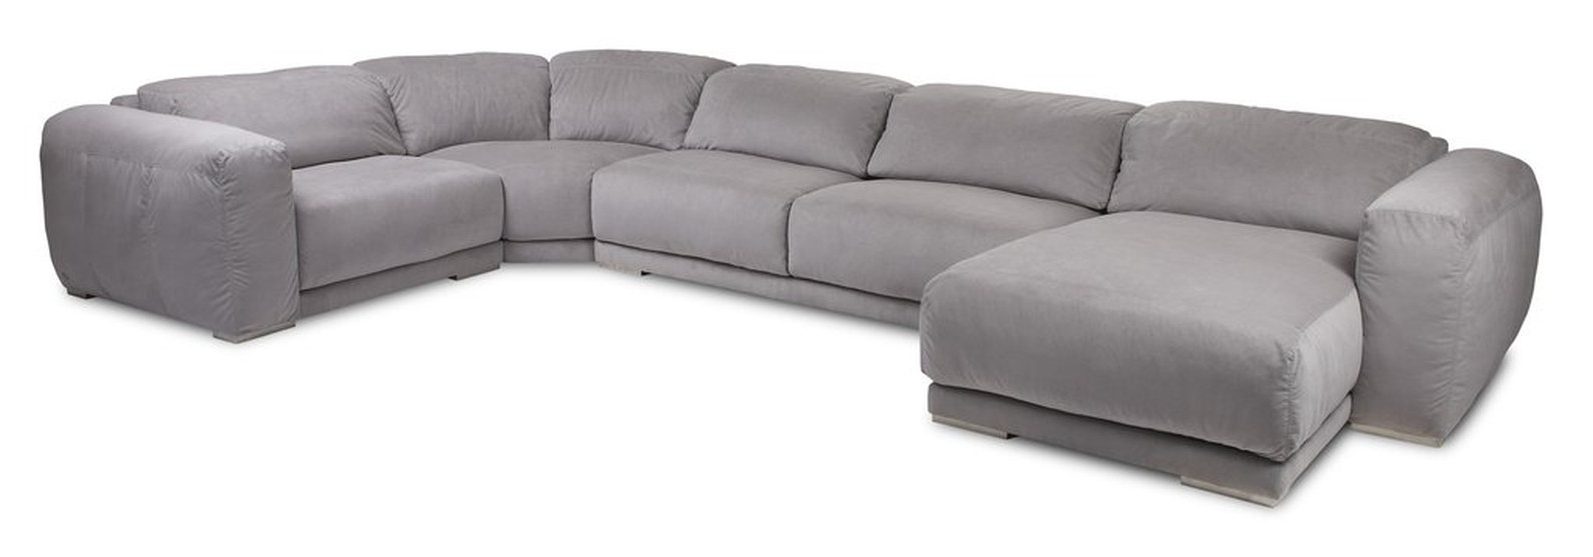 Sectional Sofa: Sectional Sofa Ottawa Dramatic Charming Sofa Sale Throughout Well Known Gatineau Sectional Sofas (View 18 of 20)